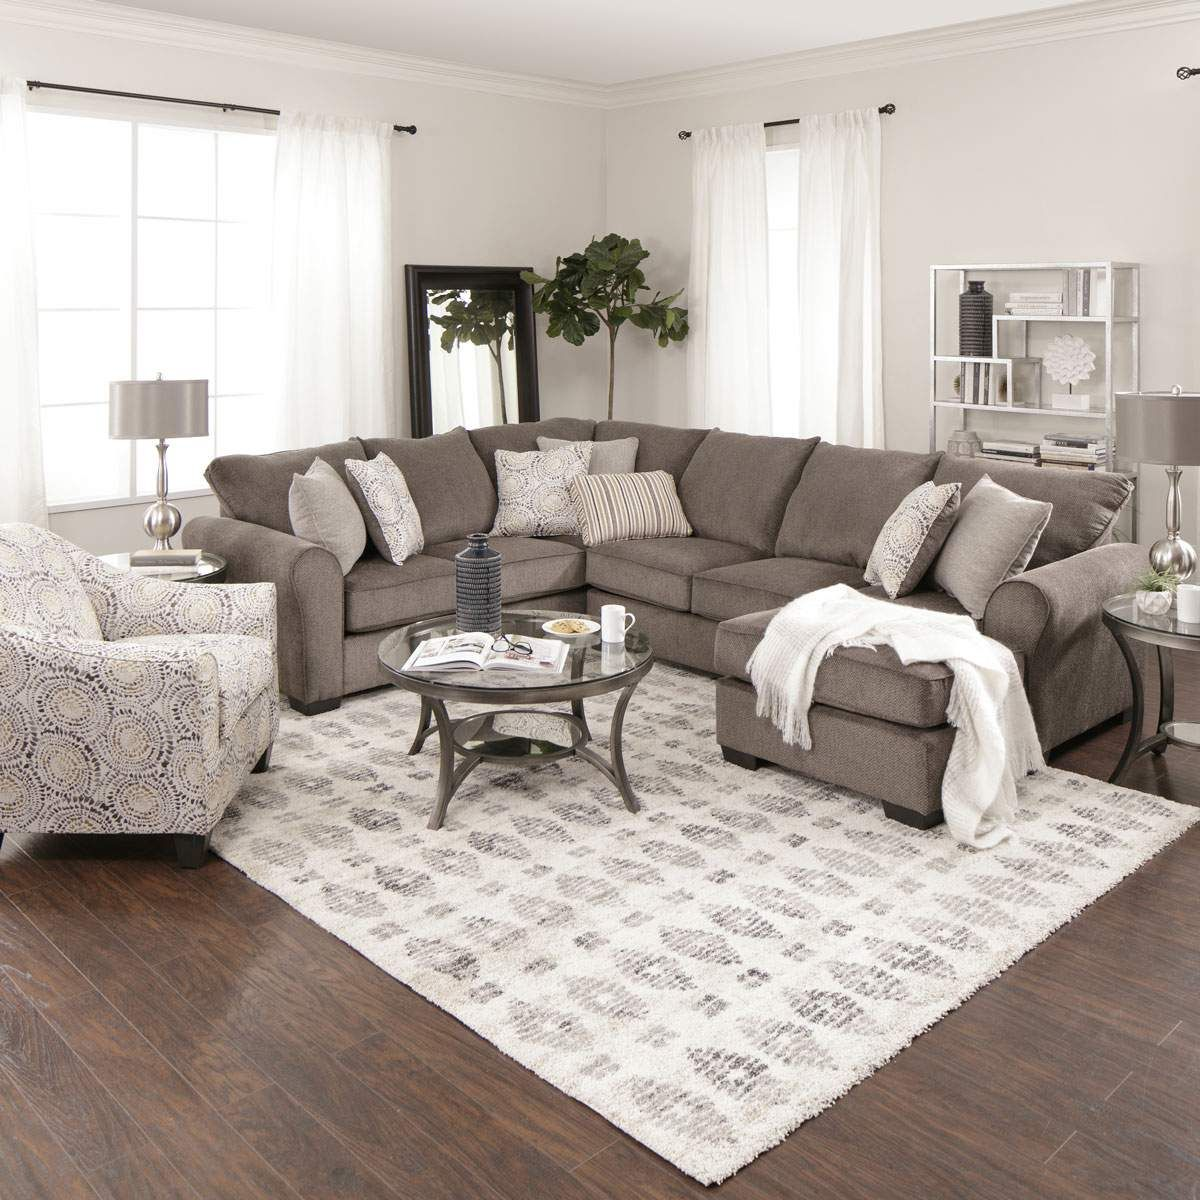 Taylor 2 Piece Sectional with Chaise in Ash | Jerome\'s ...